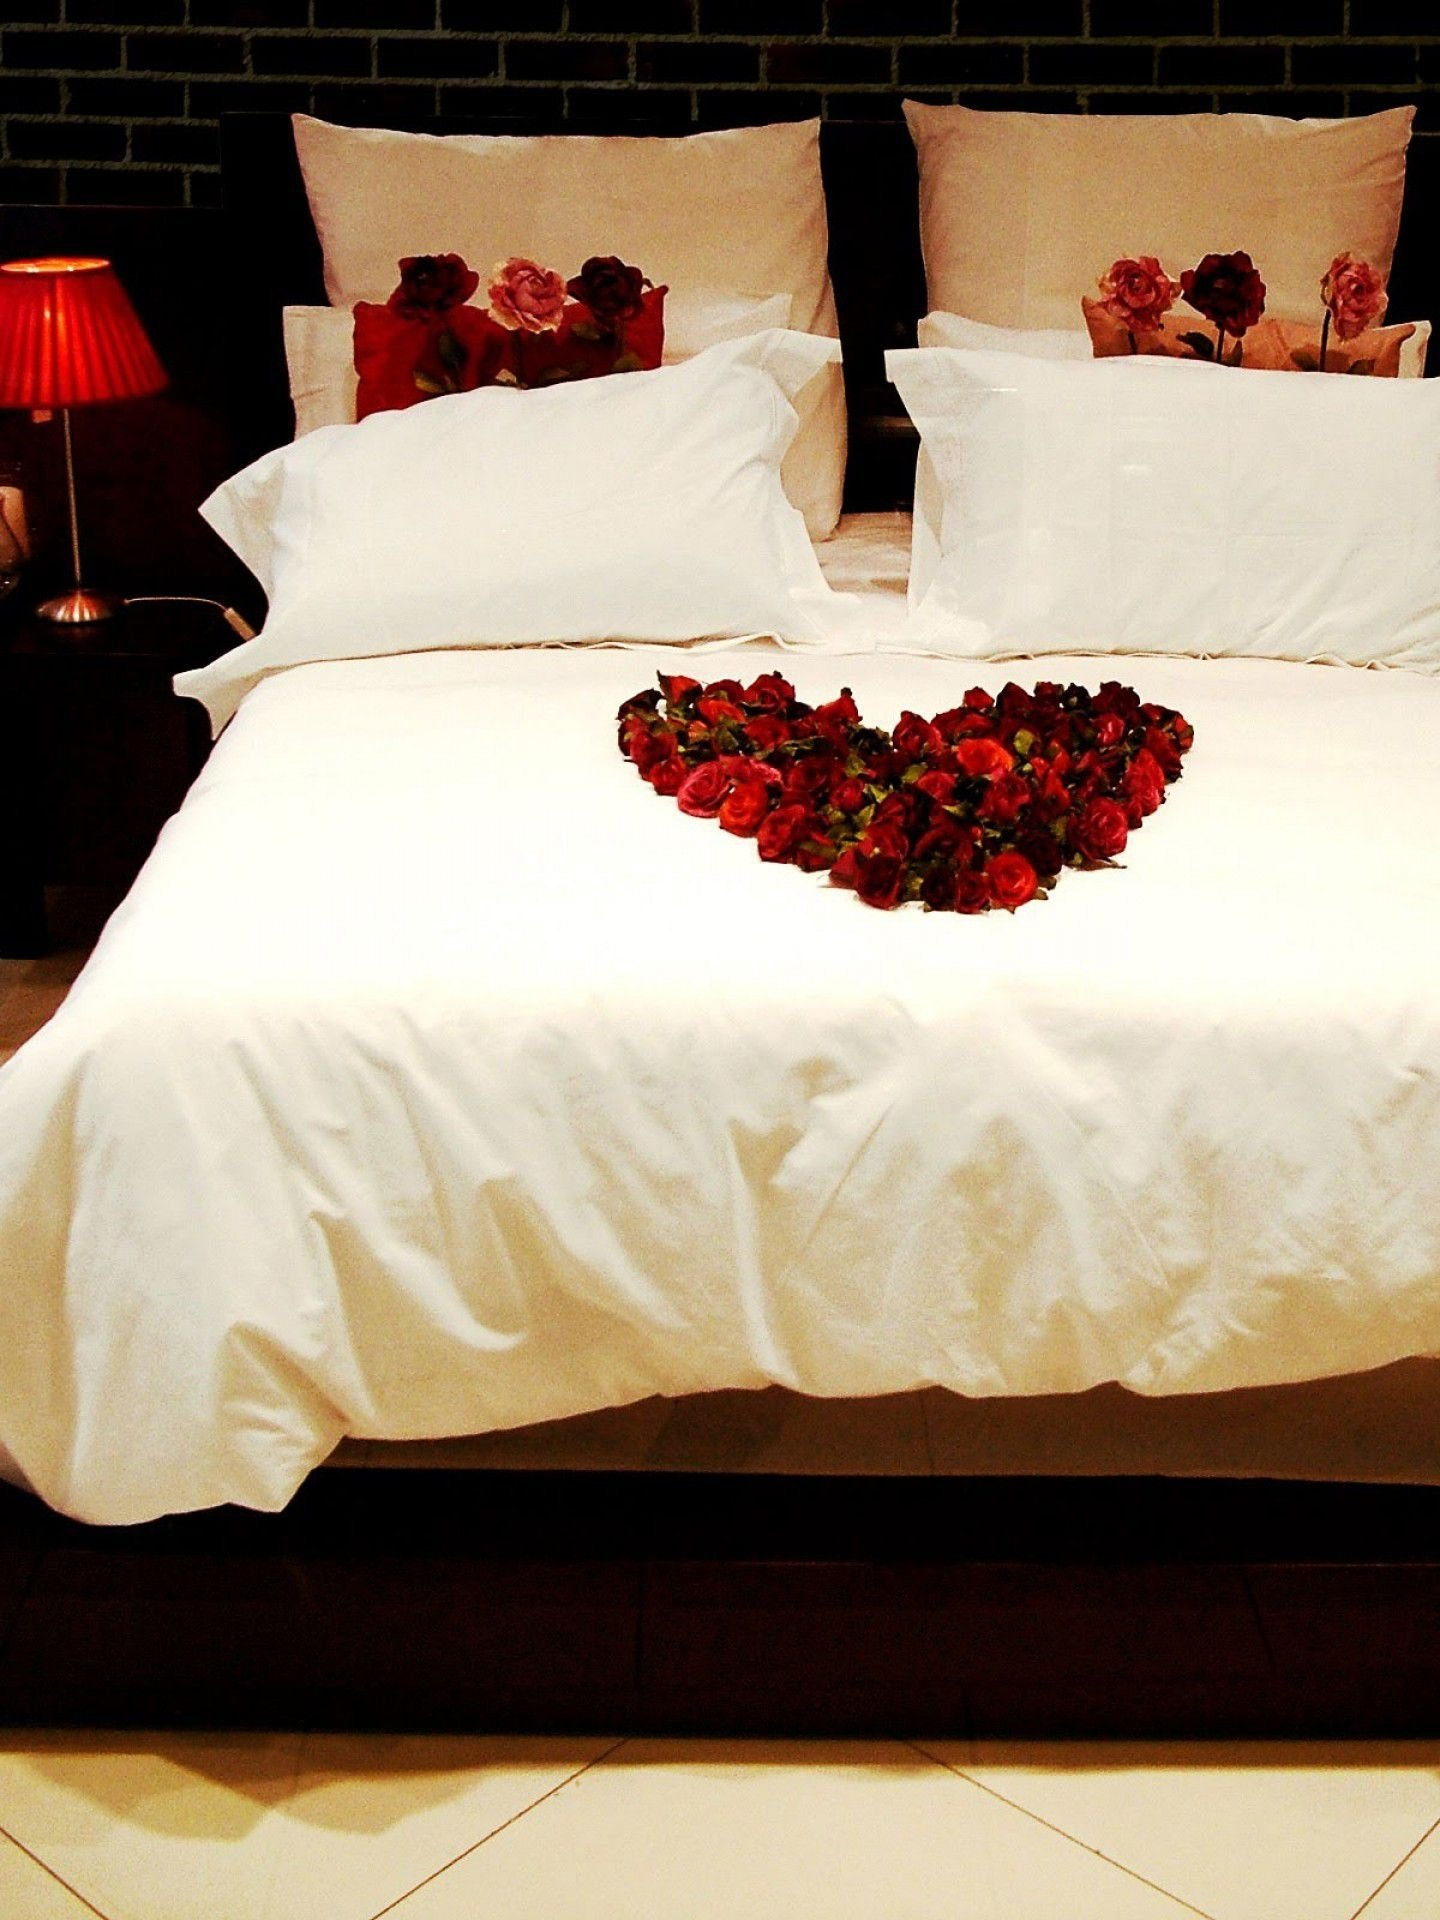 10 Lovable Romantic Hotel Ideas For Him